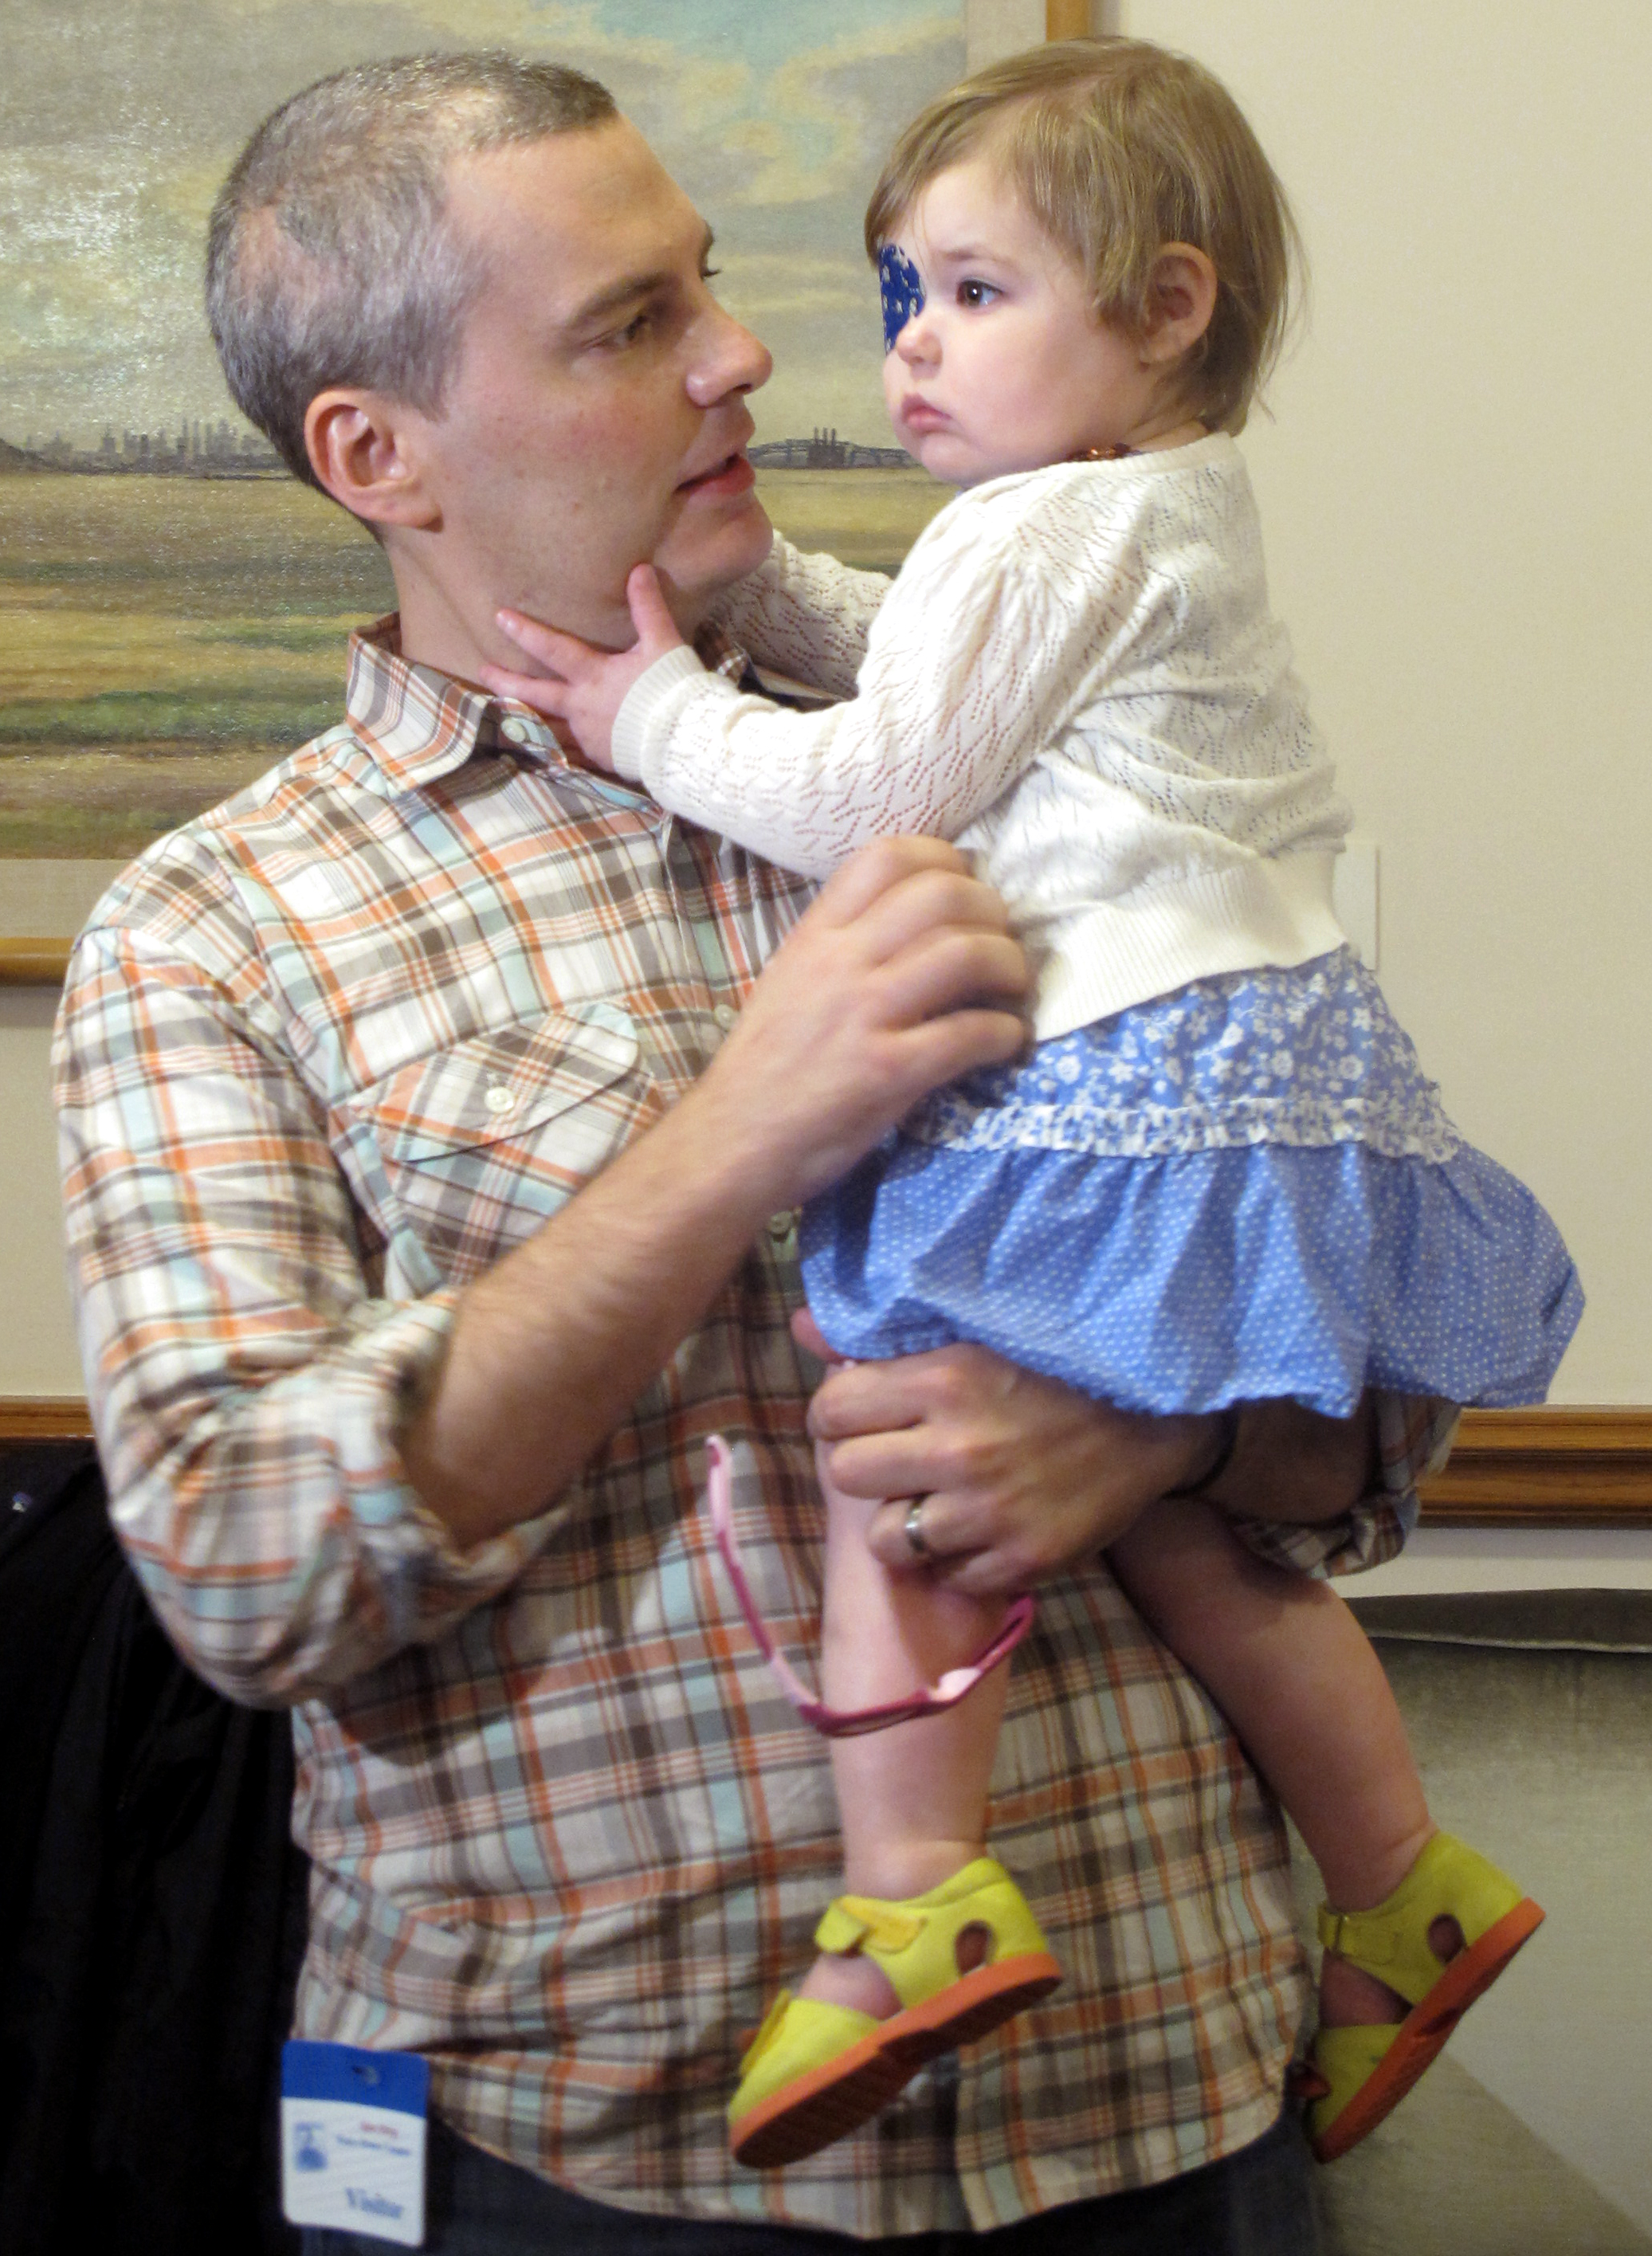 Brian Wilson, of Scotch Plains, N.J. holds his 2-year-old daughter Vivian.